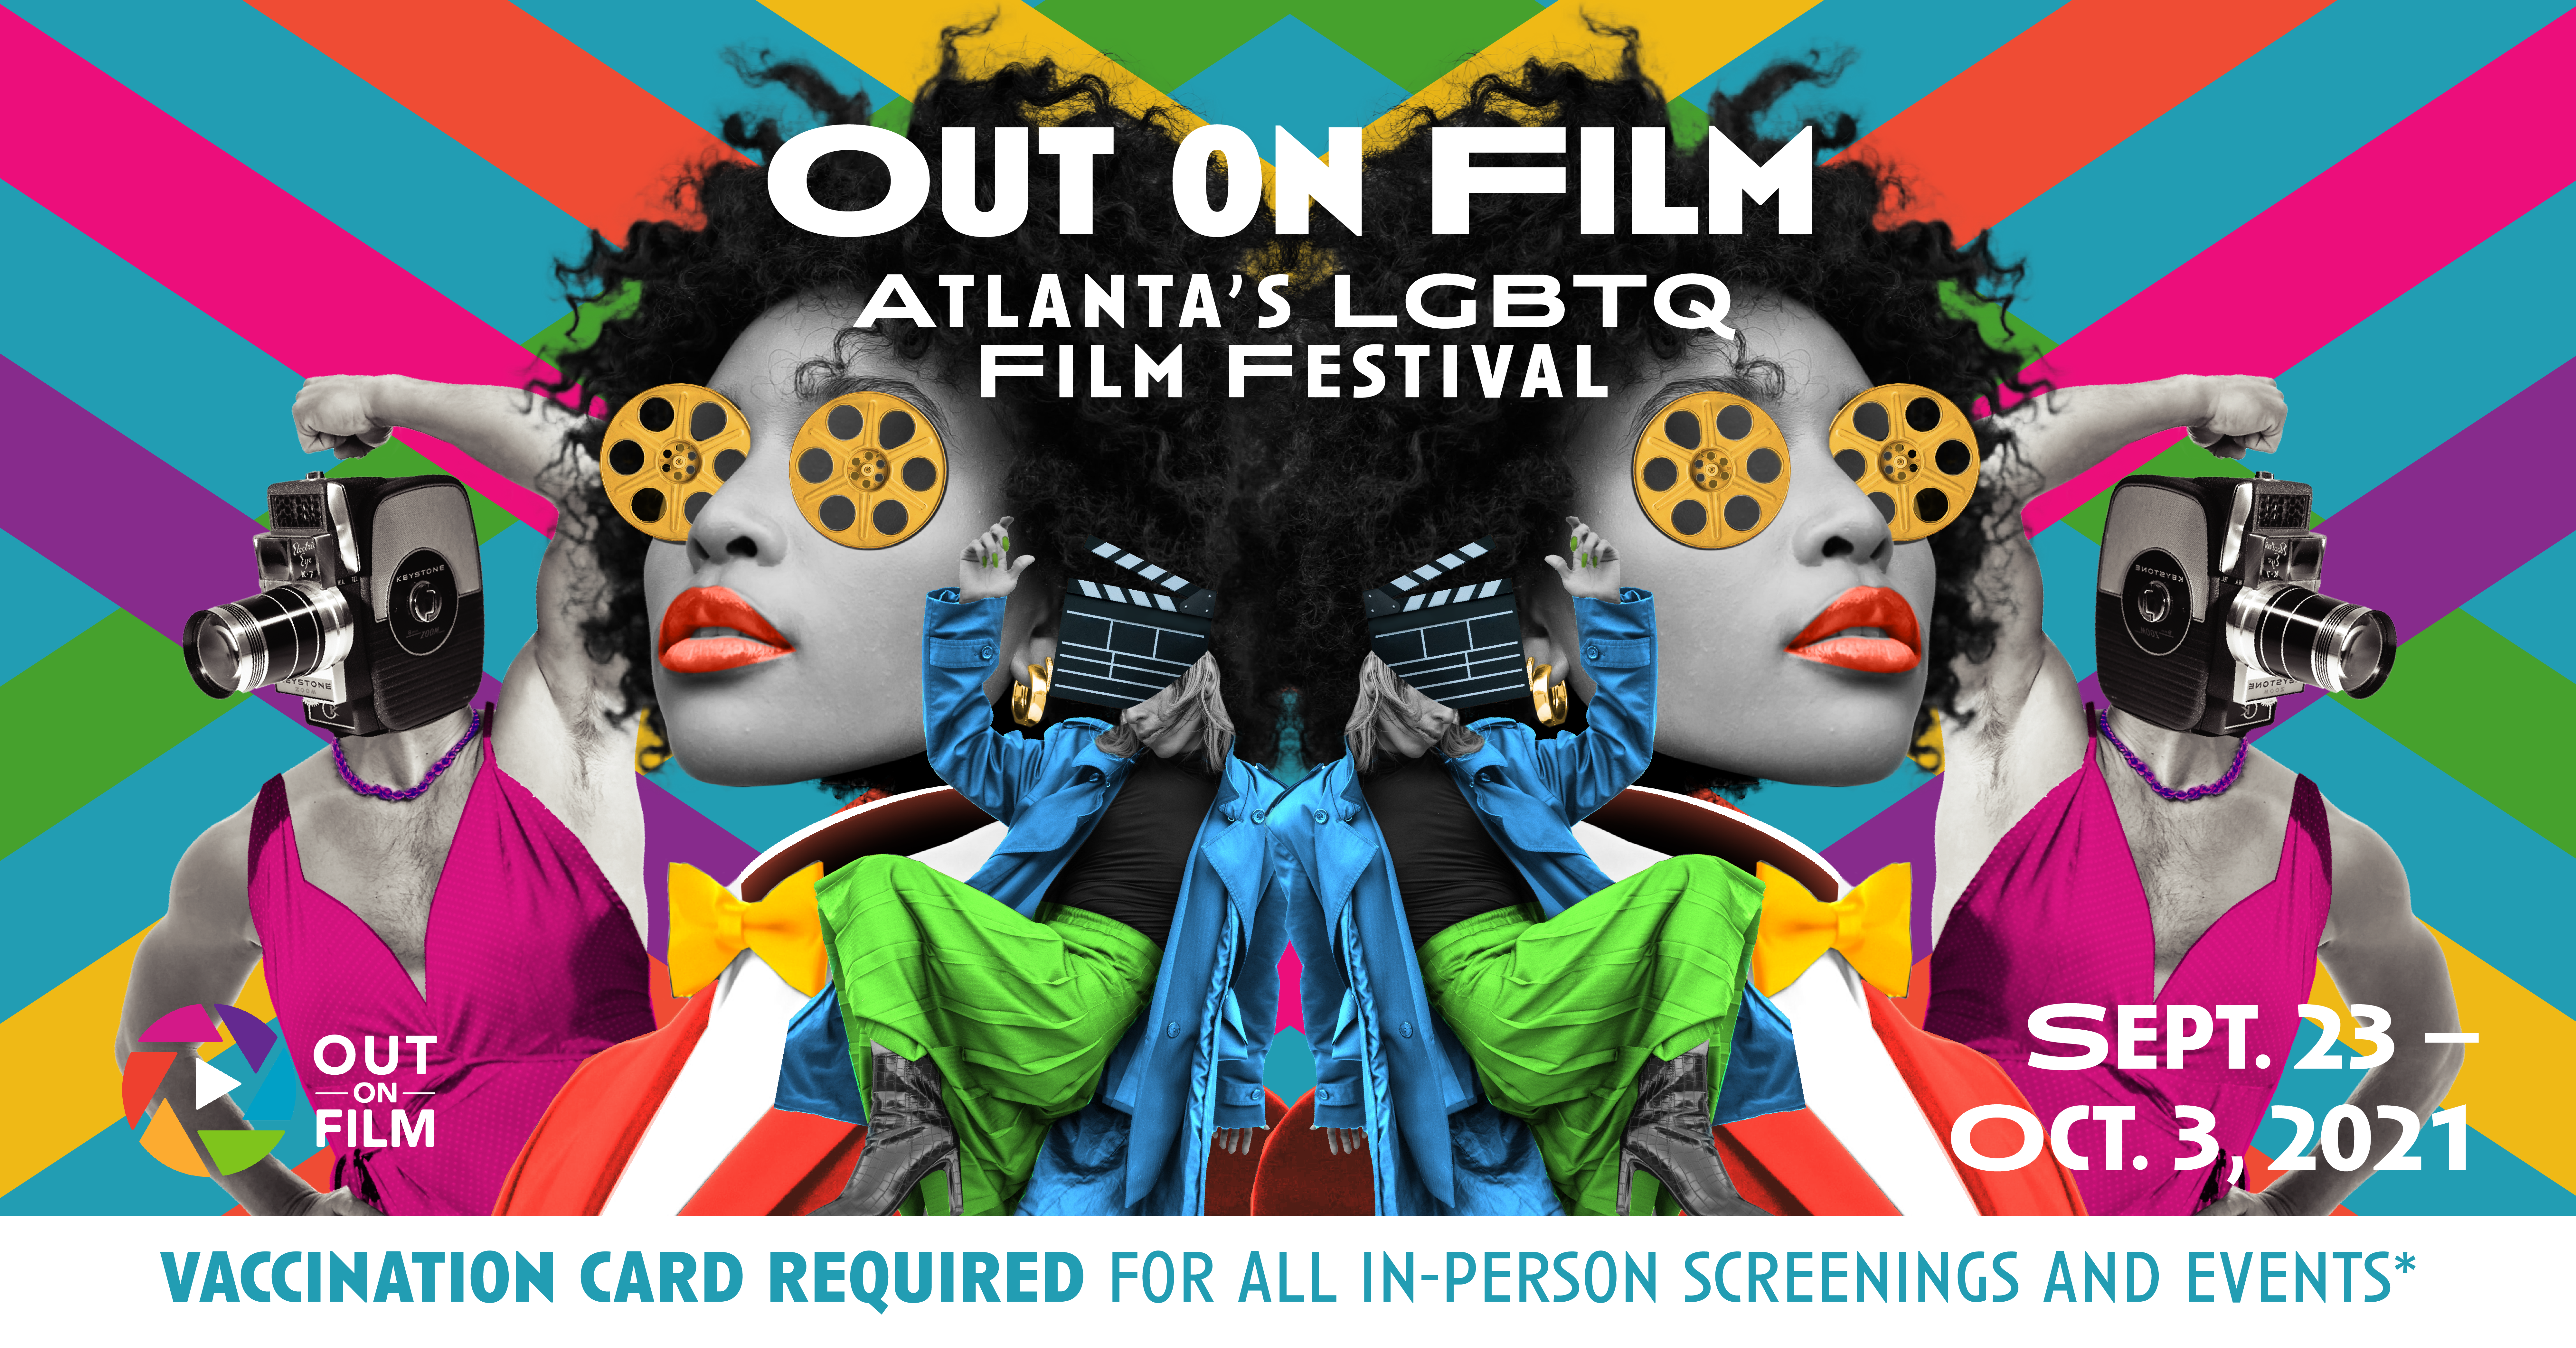 2021 Out on Film Festival